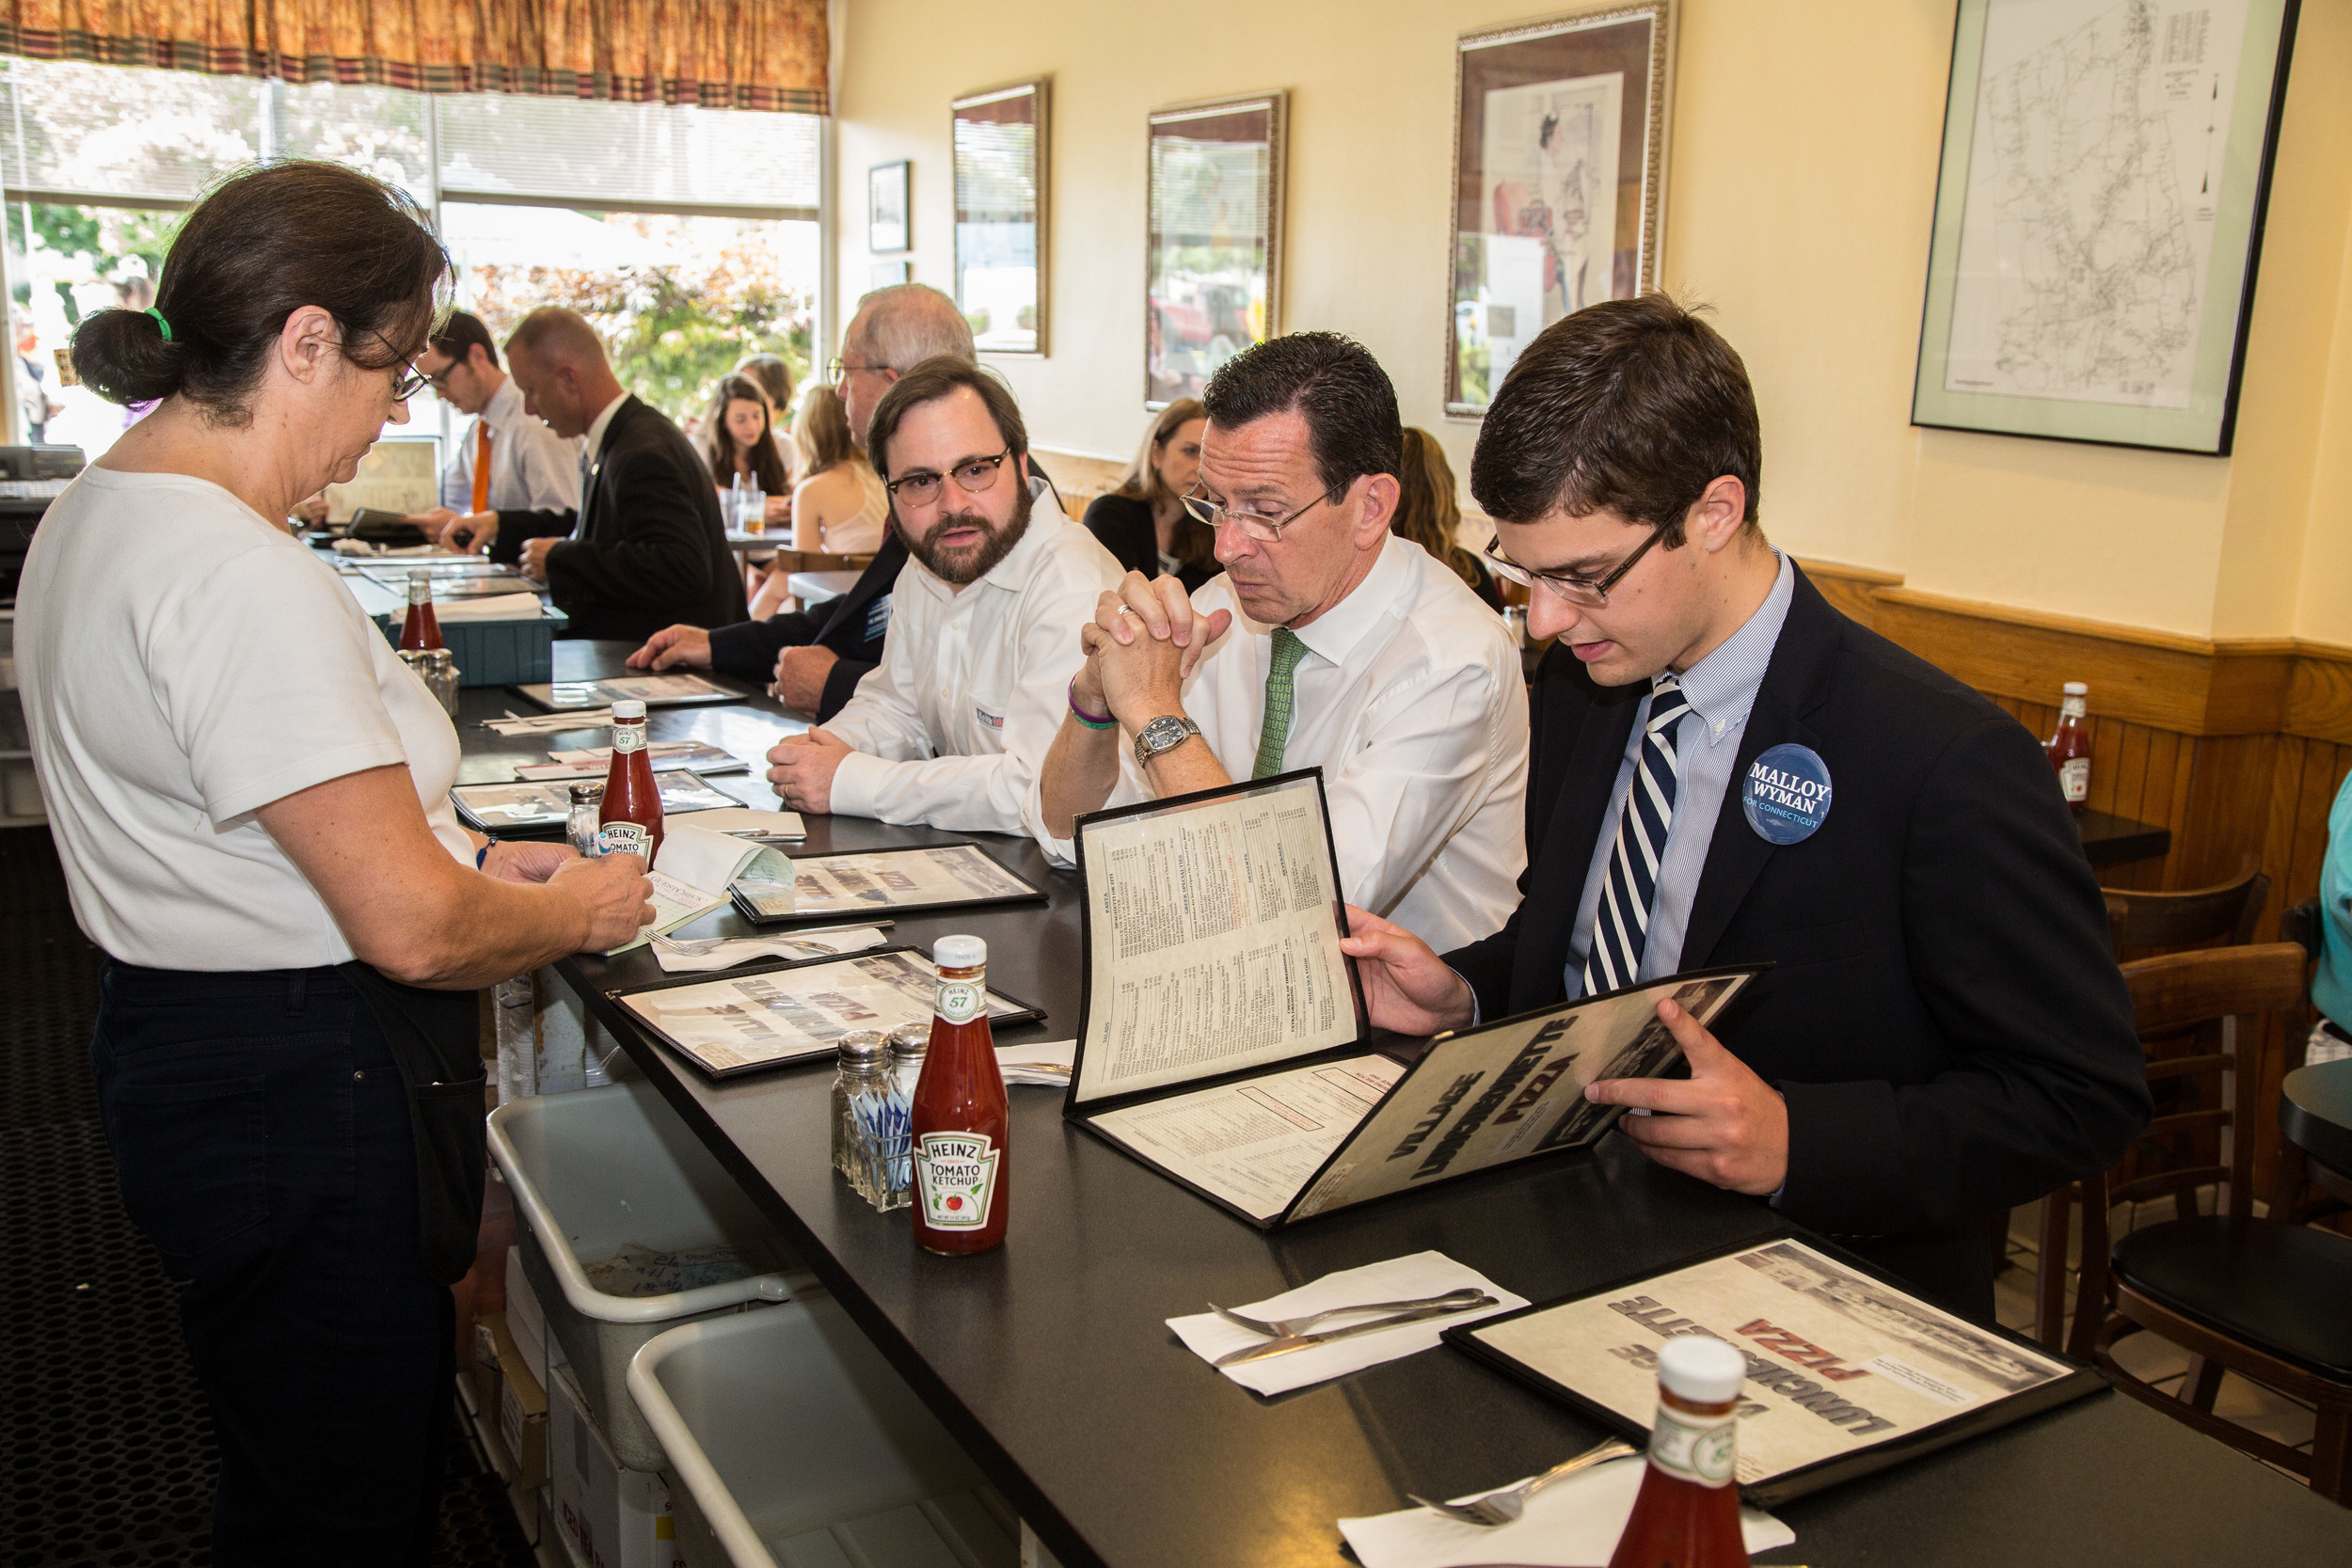 Connecticut Governor Dannel Malloy eats in Wilton, Conn.